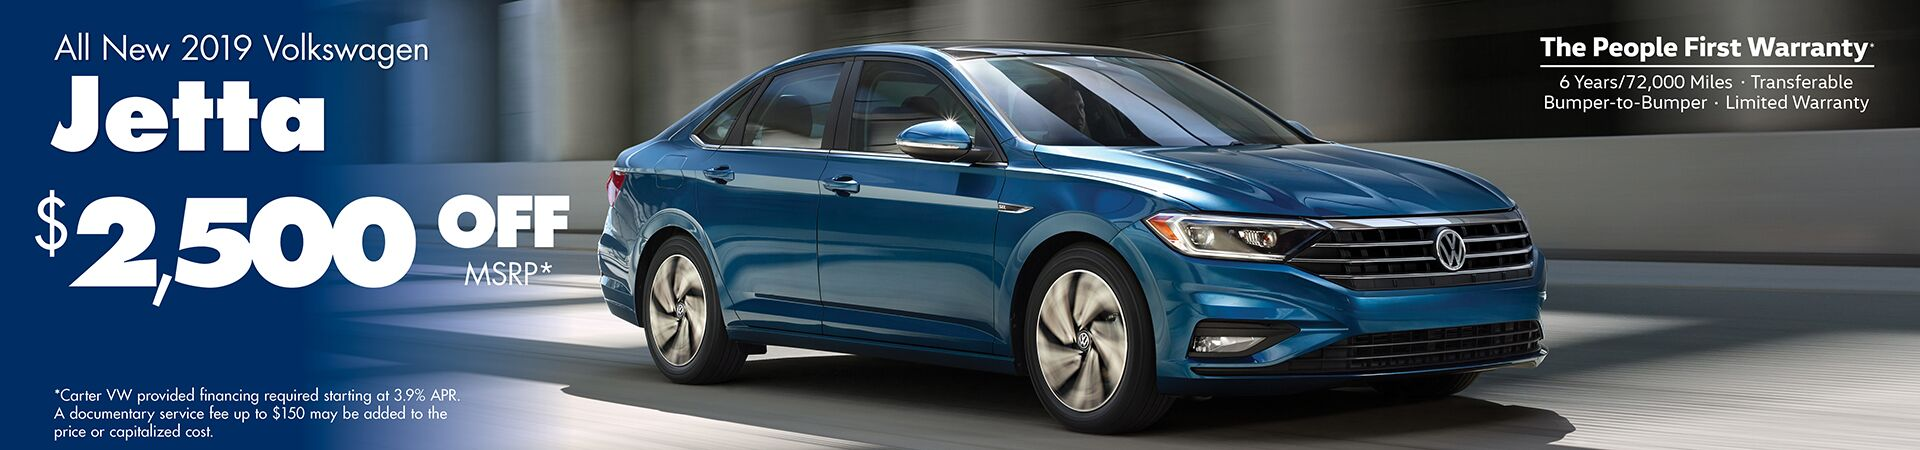 All New 2019 Volkswagen Jetta Special in Seattle